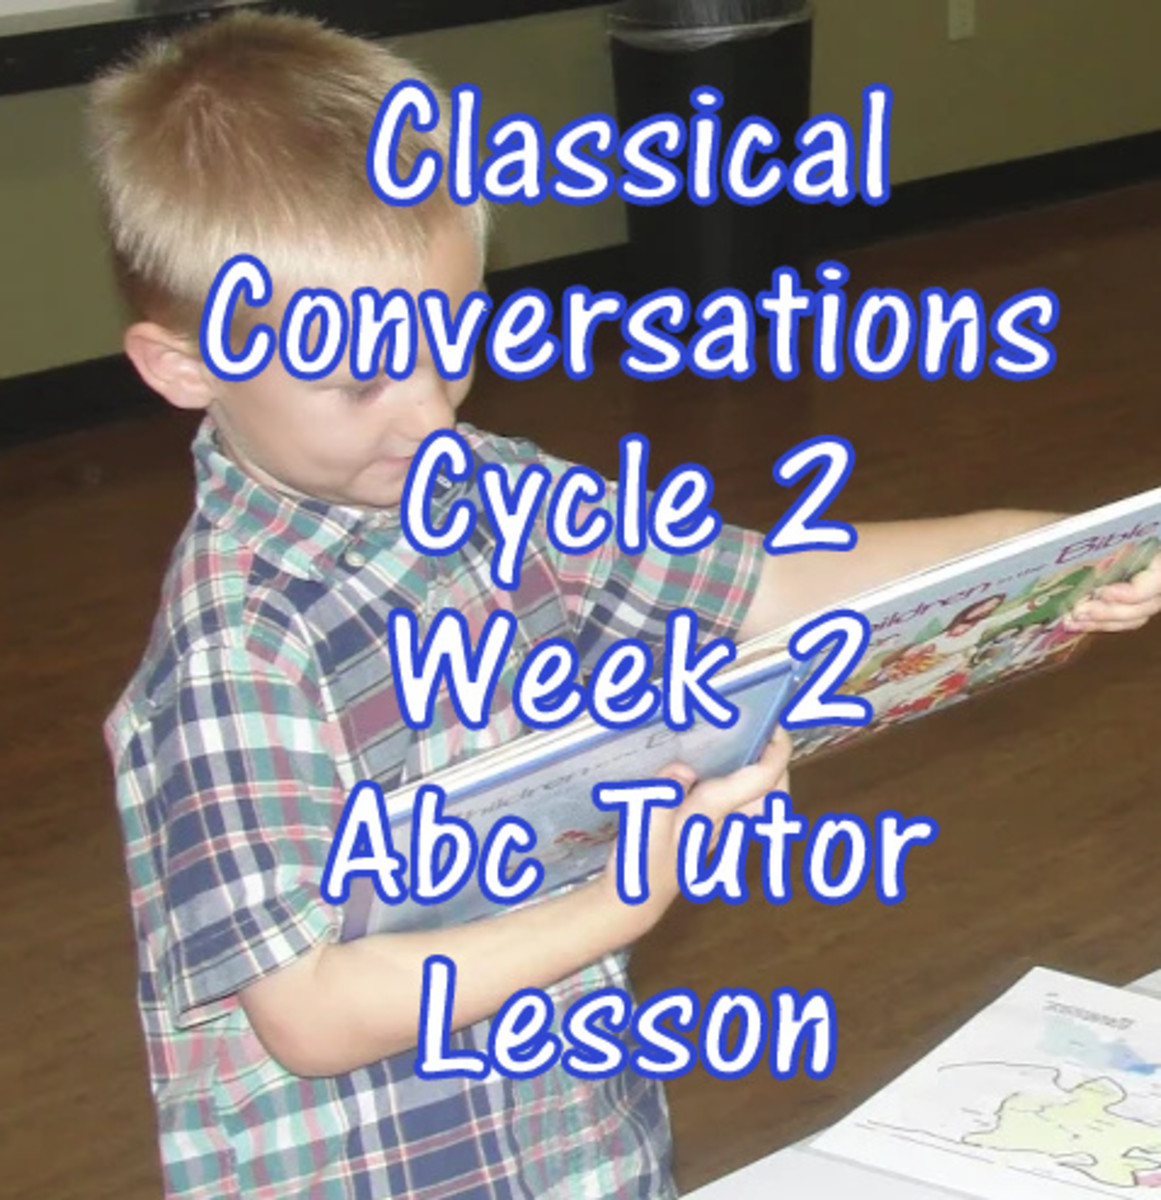 Classical Conversations Cycle 2 Week 2 Abc Tutor Lesson Plan